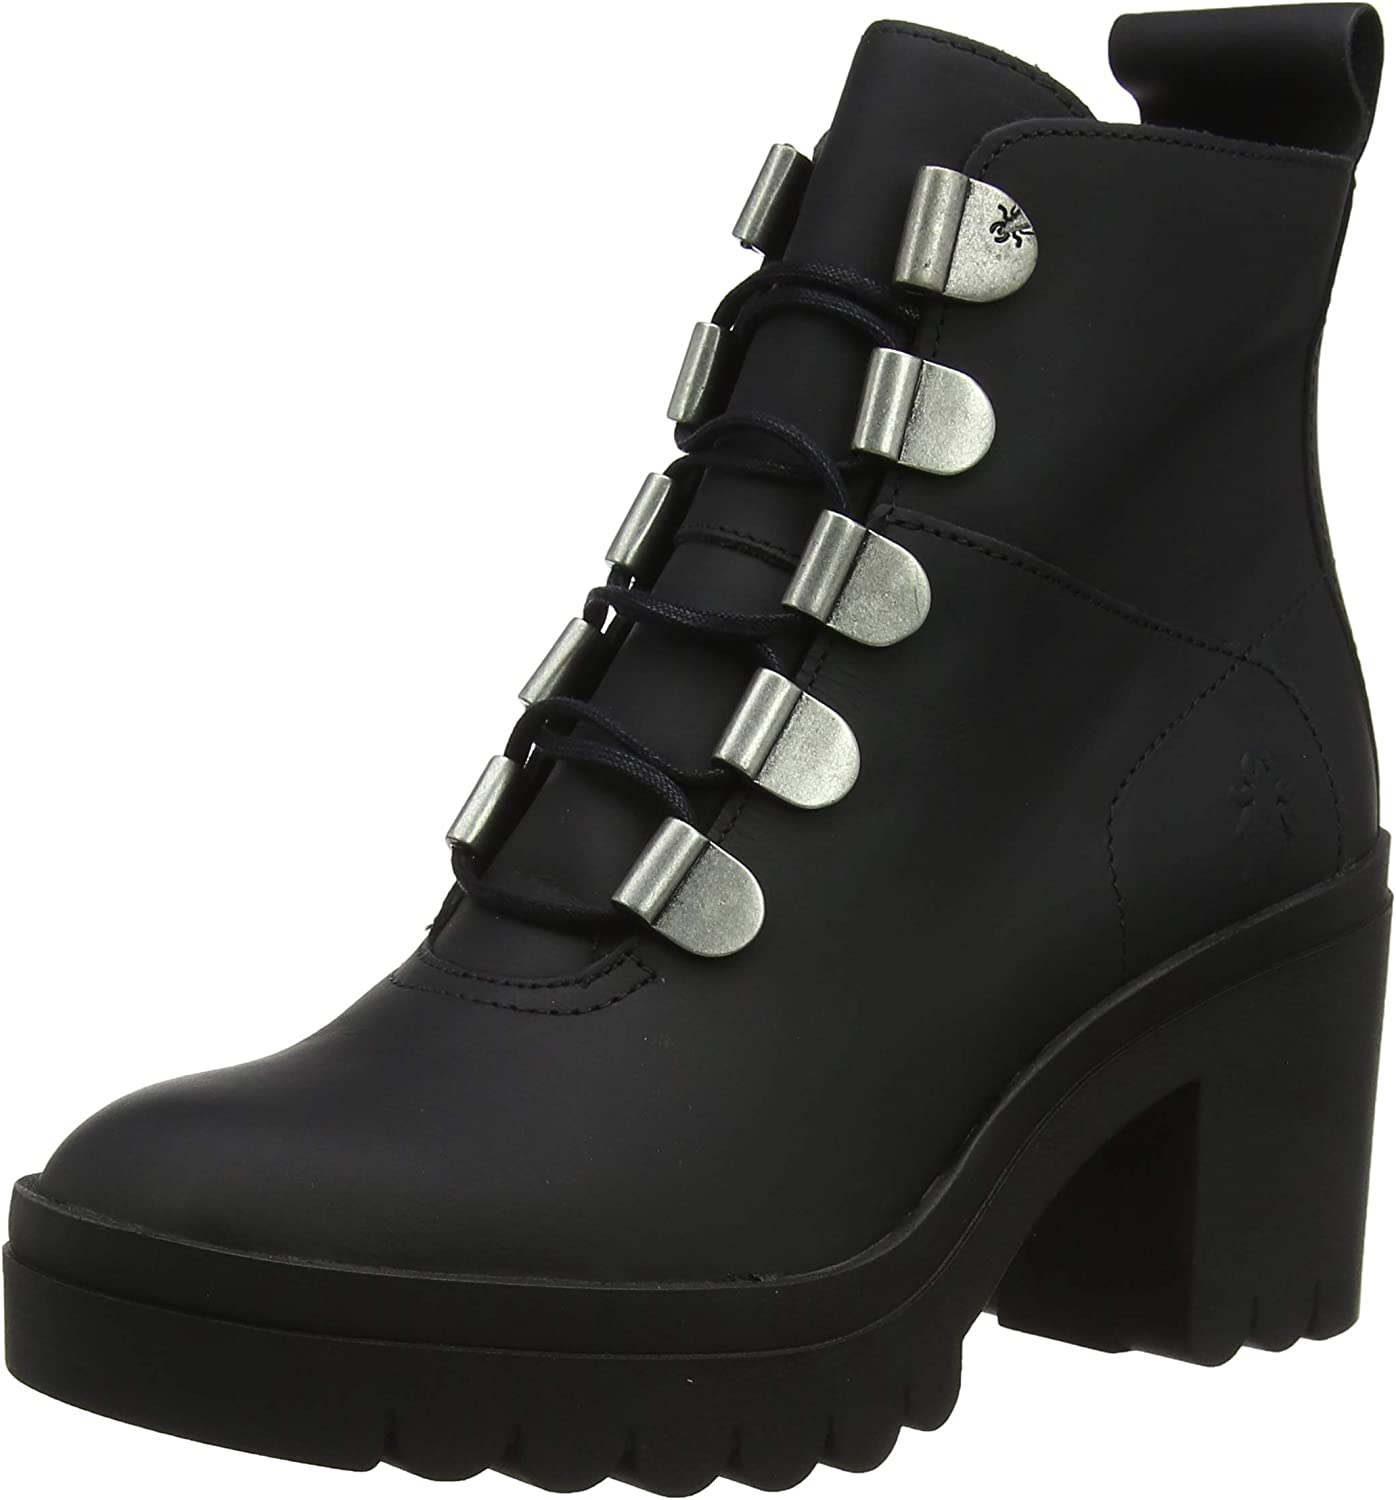 In stock FLY London Women's Ankle Boots Al sold out.